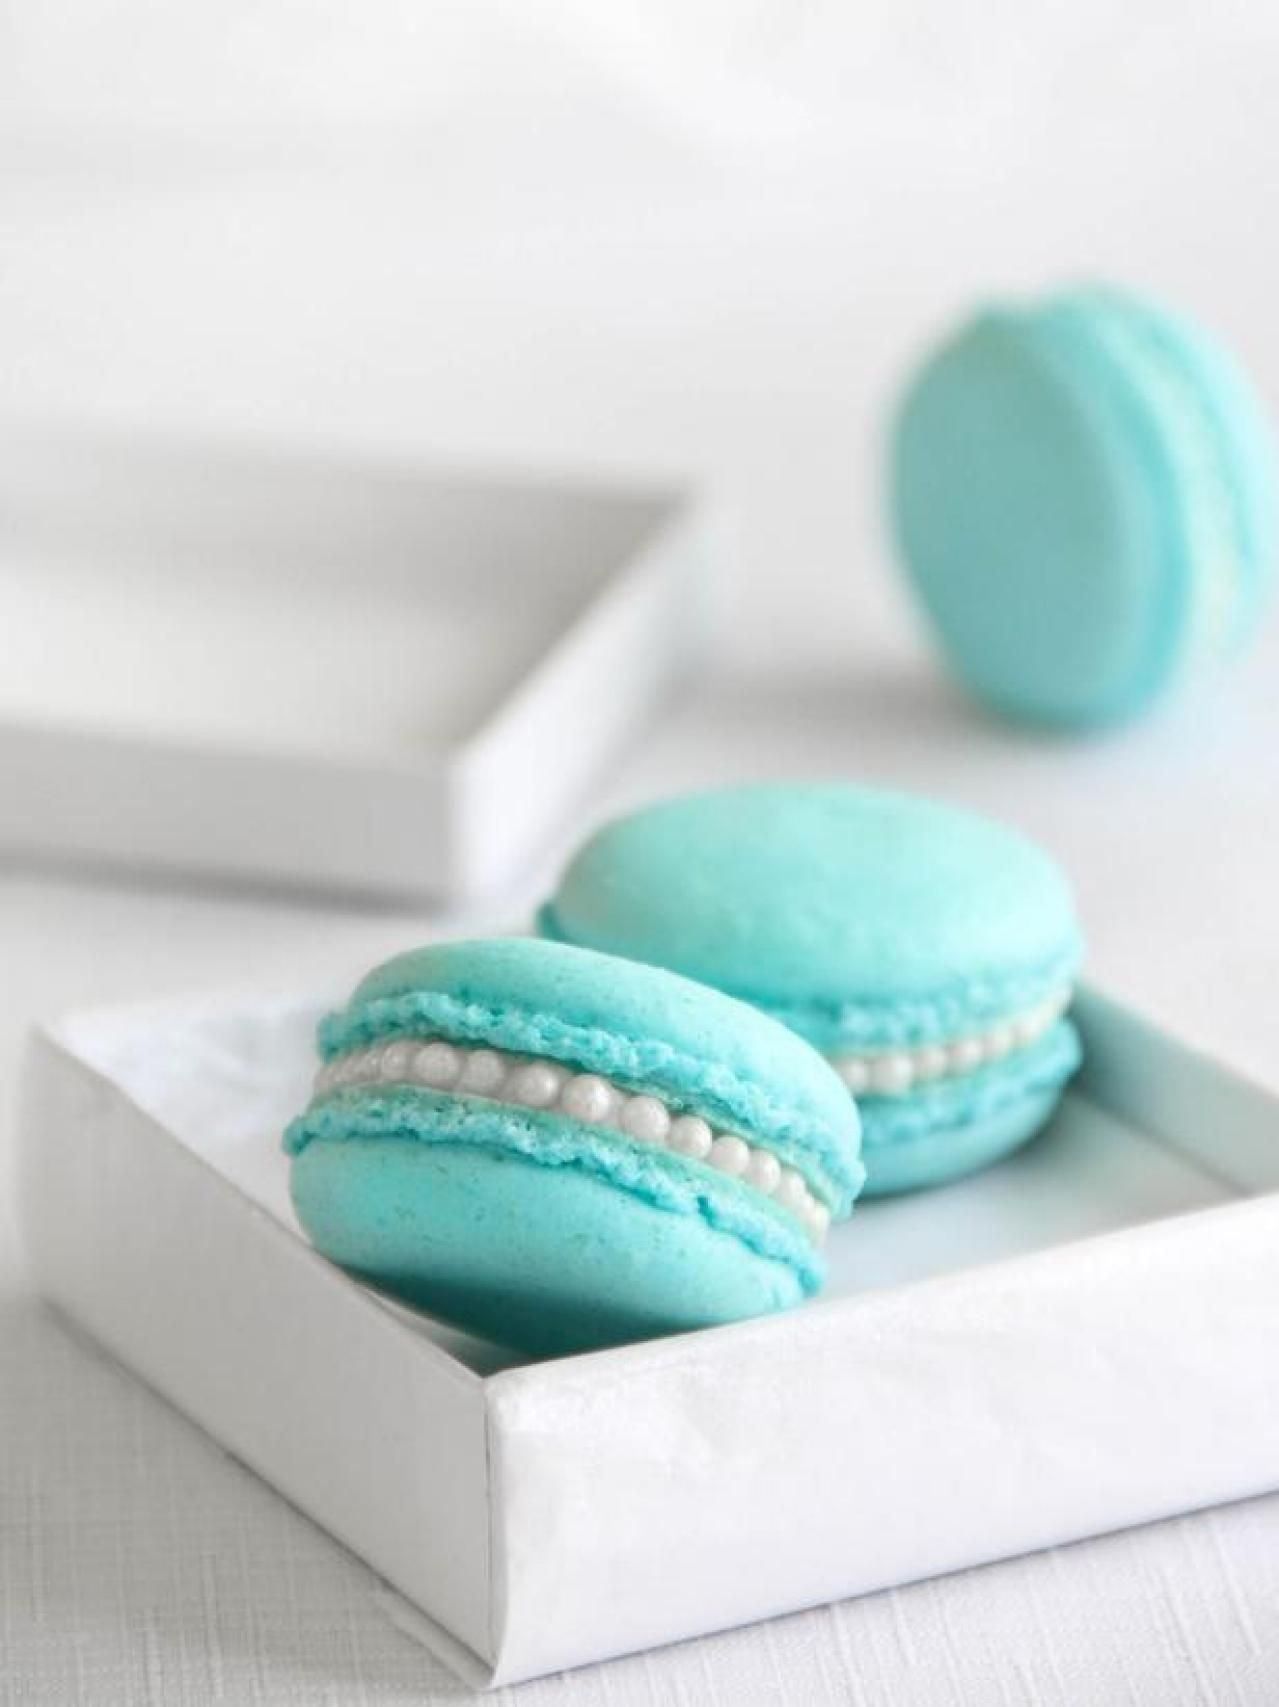 Weddings: Party Favor Projects and Ideas   Pinterest   Tiffany blue ...